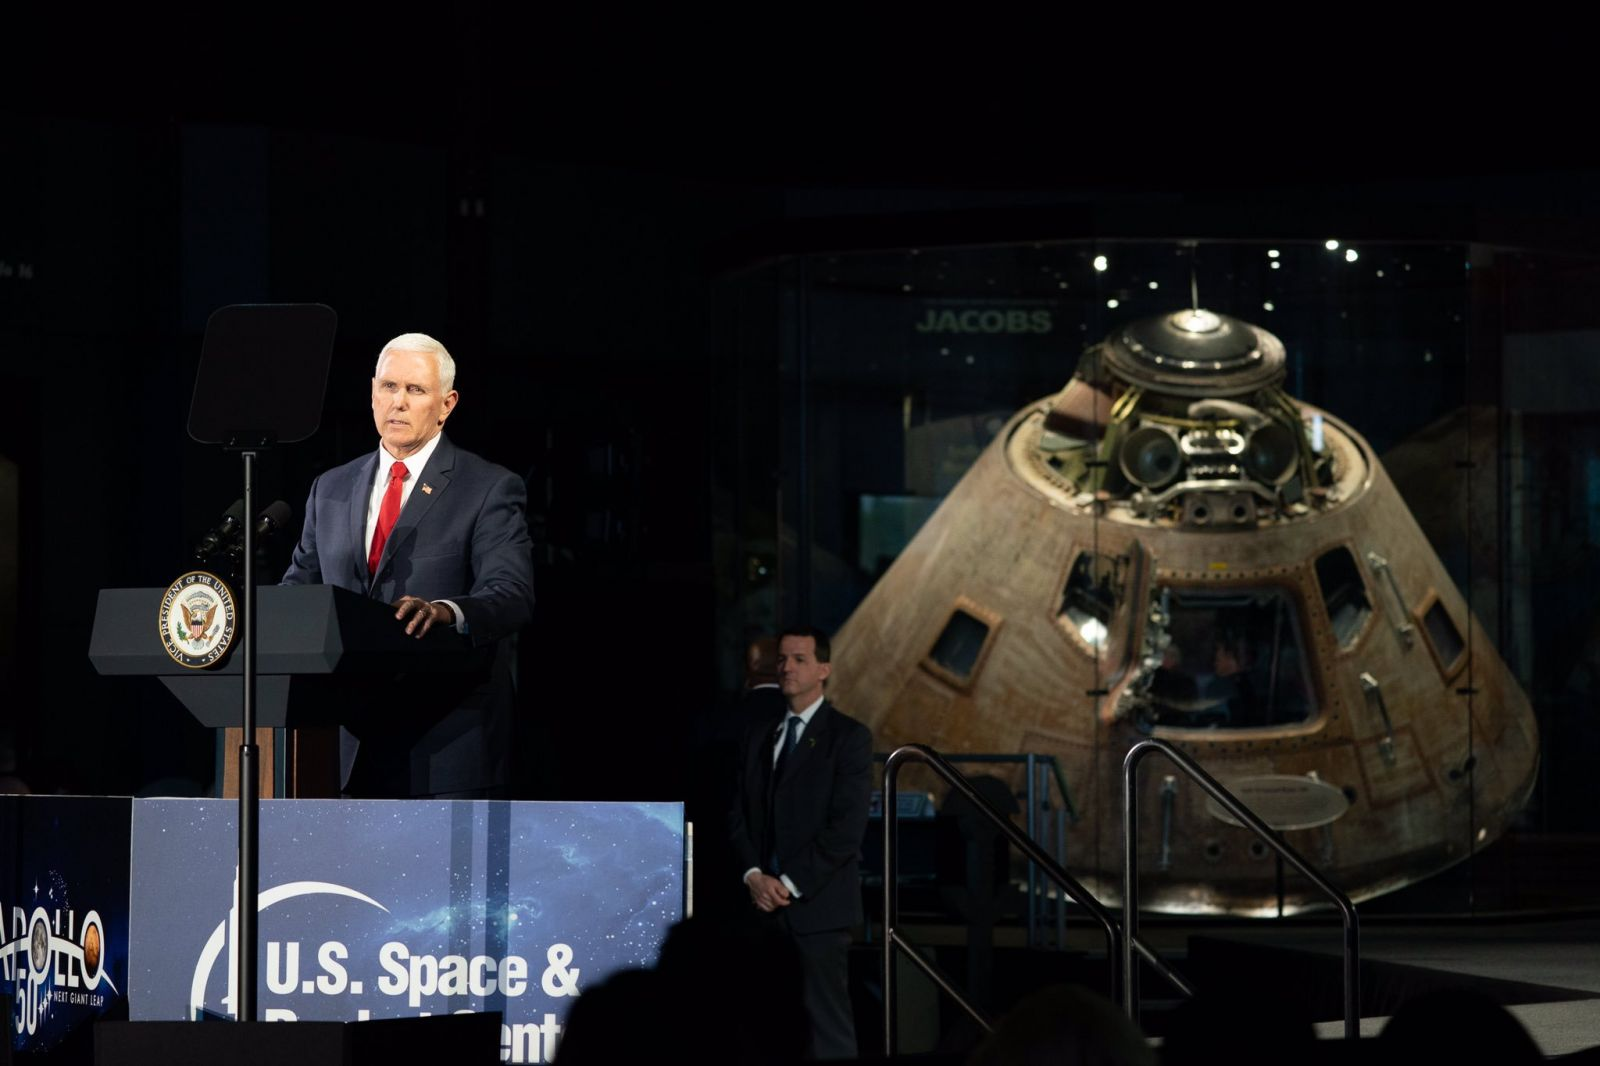 In a speech at the Marshall Space Flight Center in Huntsville, Alabama, Vice President Mike Pence challenged NASA to land U.S. astronauts on the Moon by 2024. Photo Credit: NASA / White House